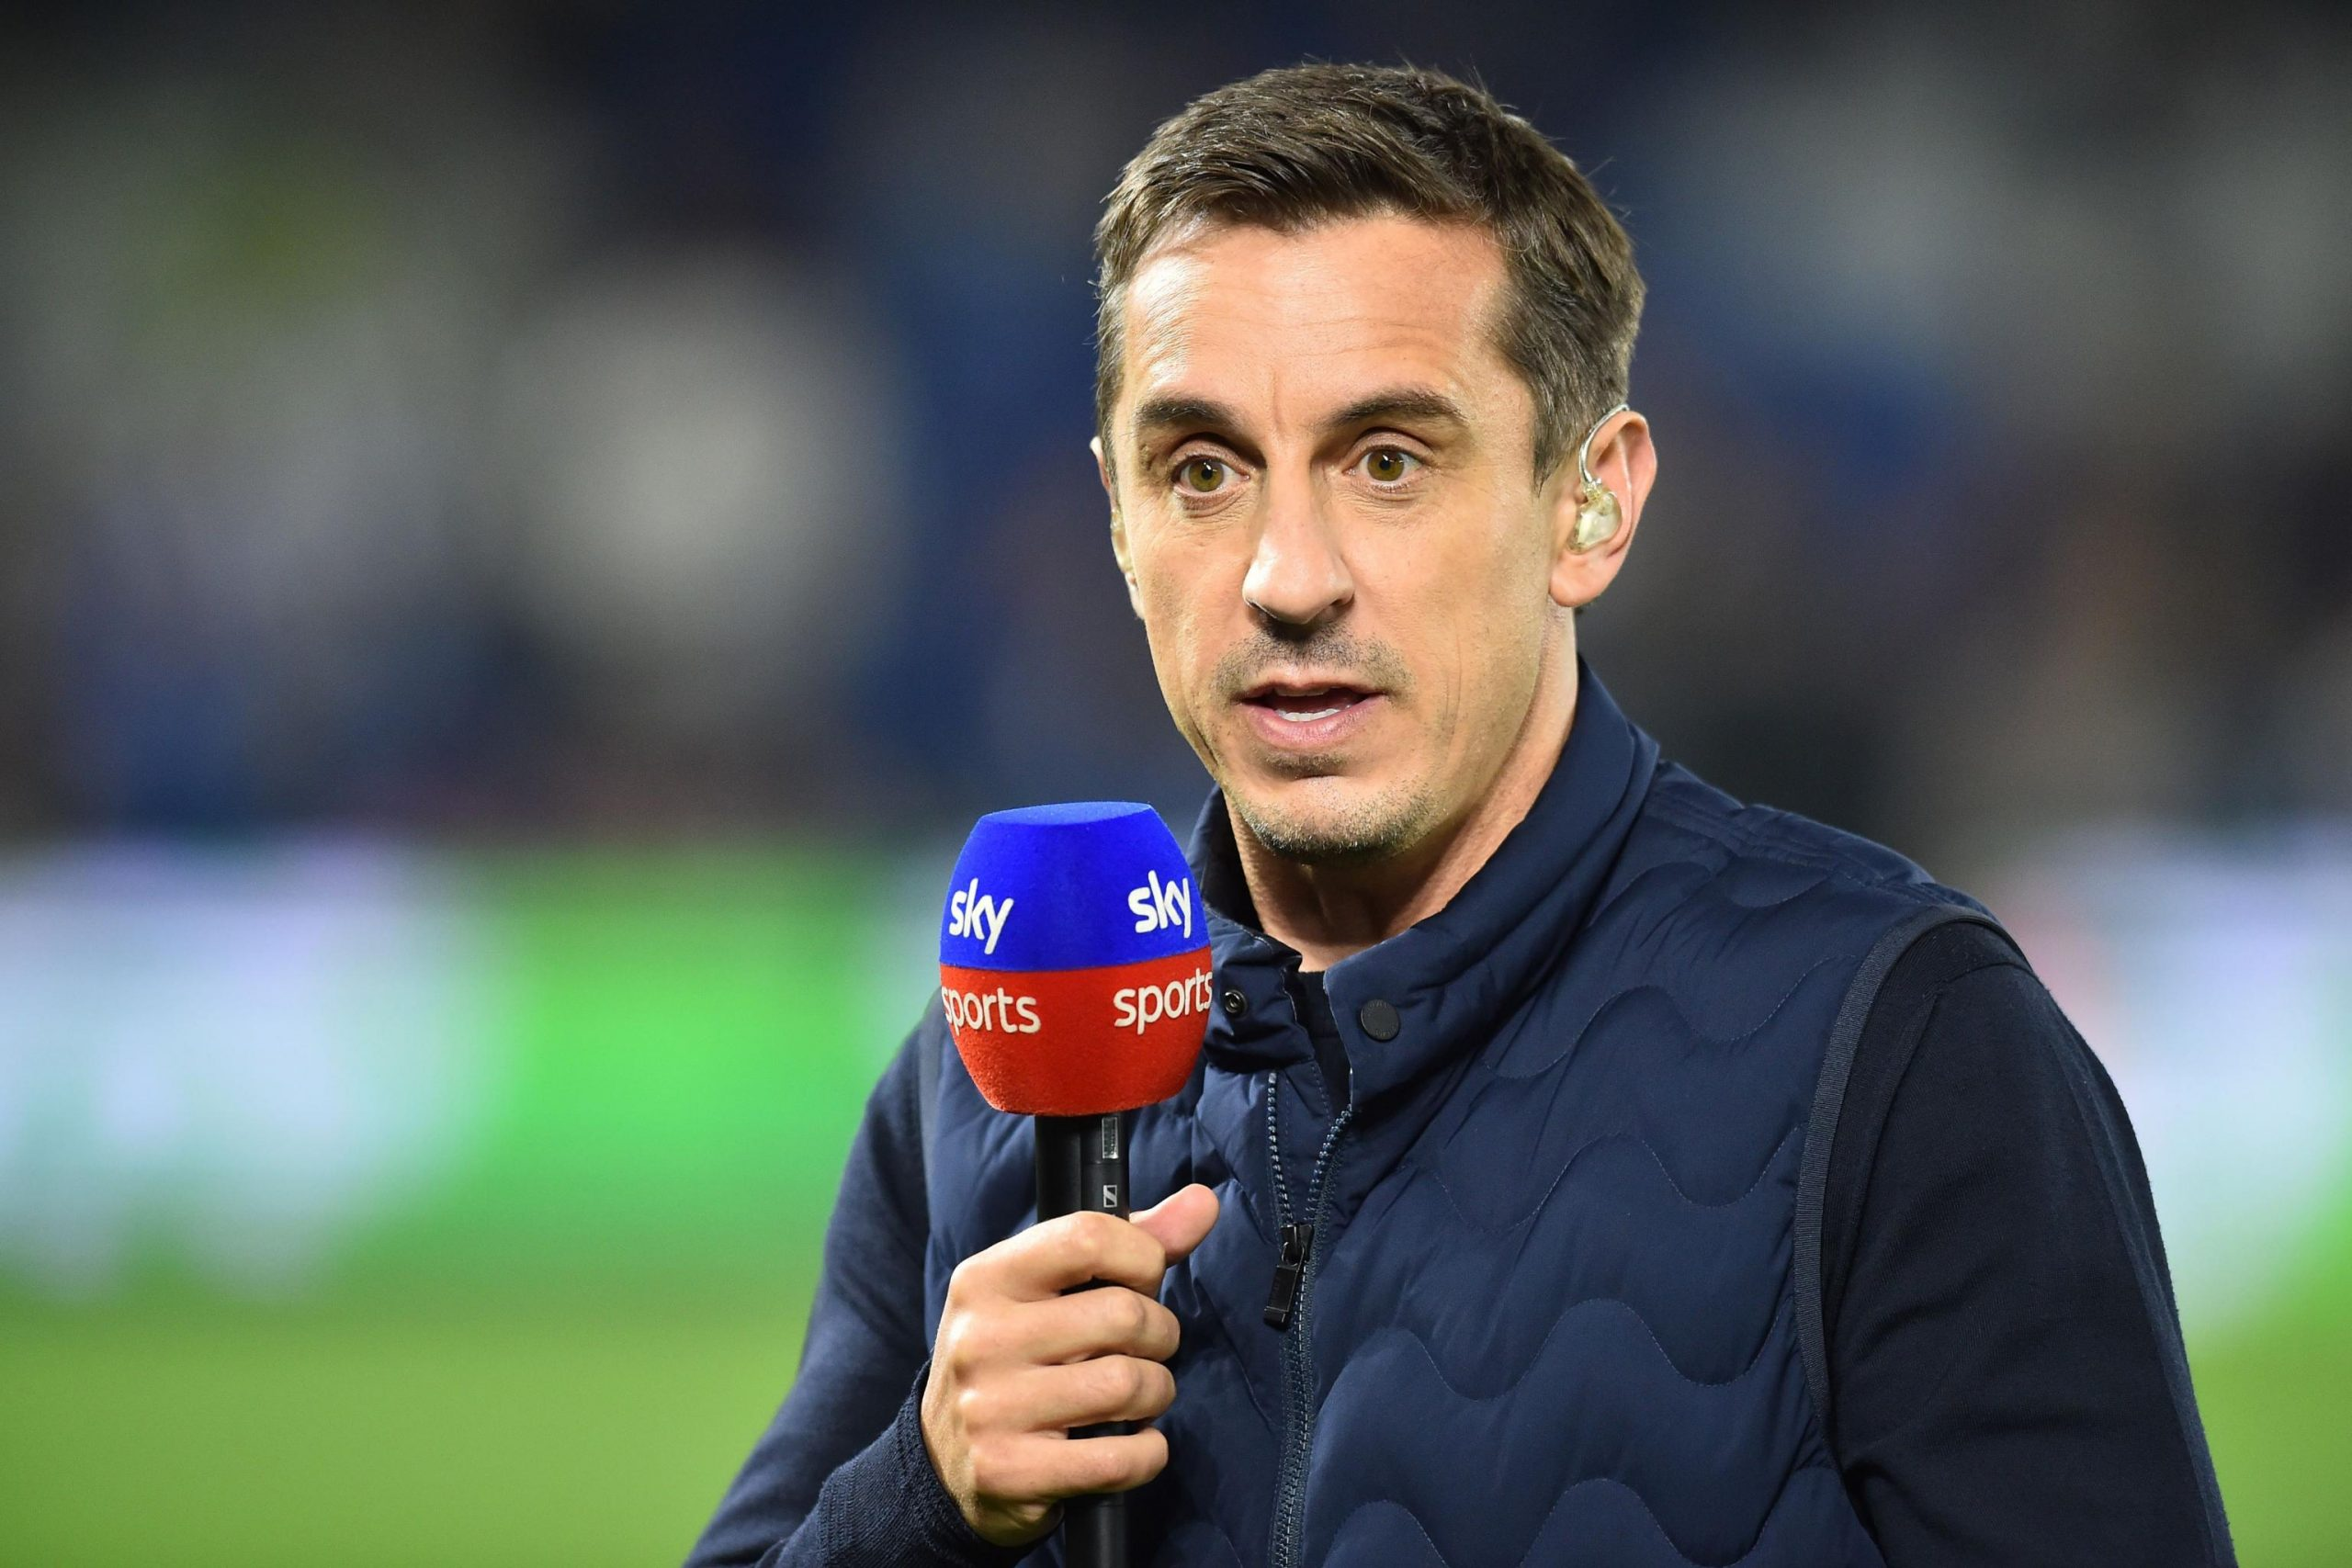 Neville: England needs something special.